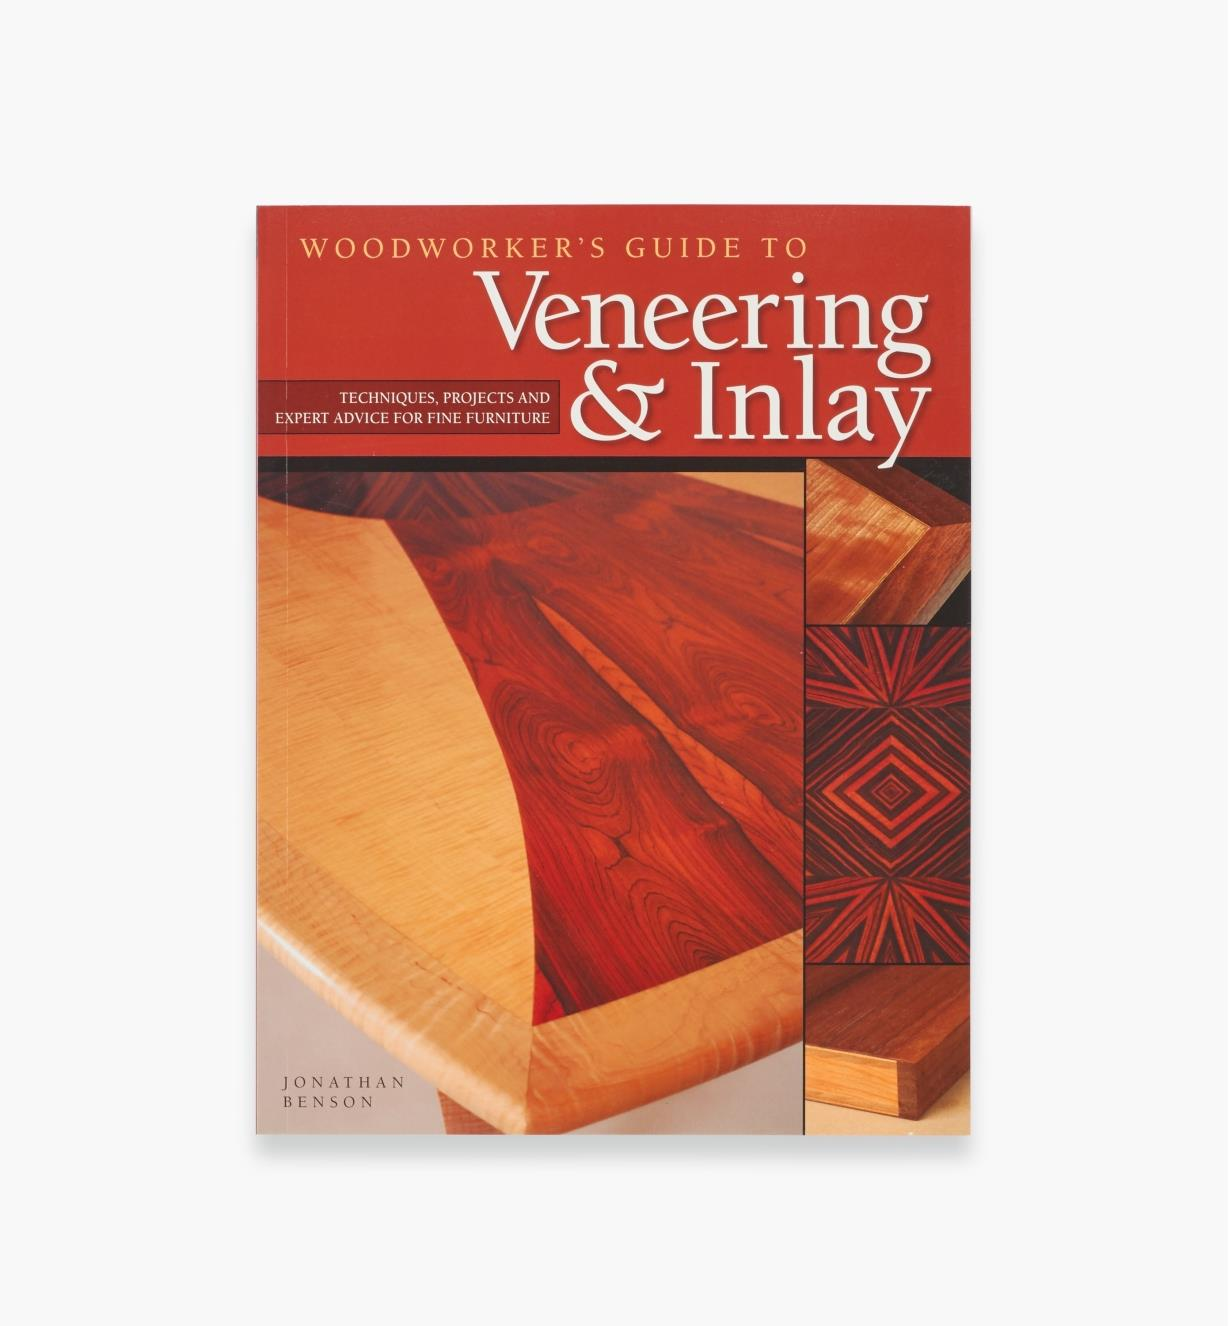 49L5062 - Woodworker's Guide toVeneering & Inlay